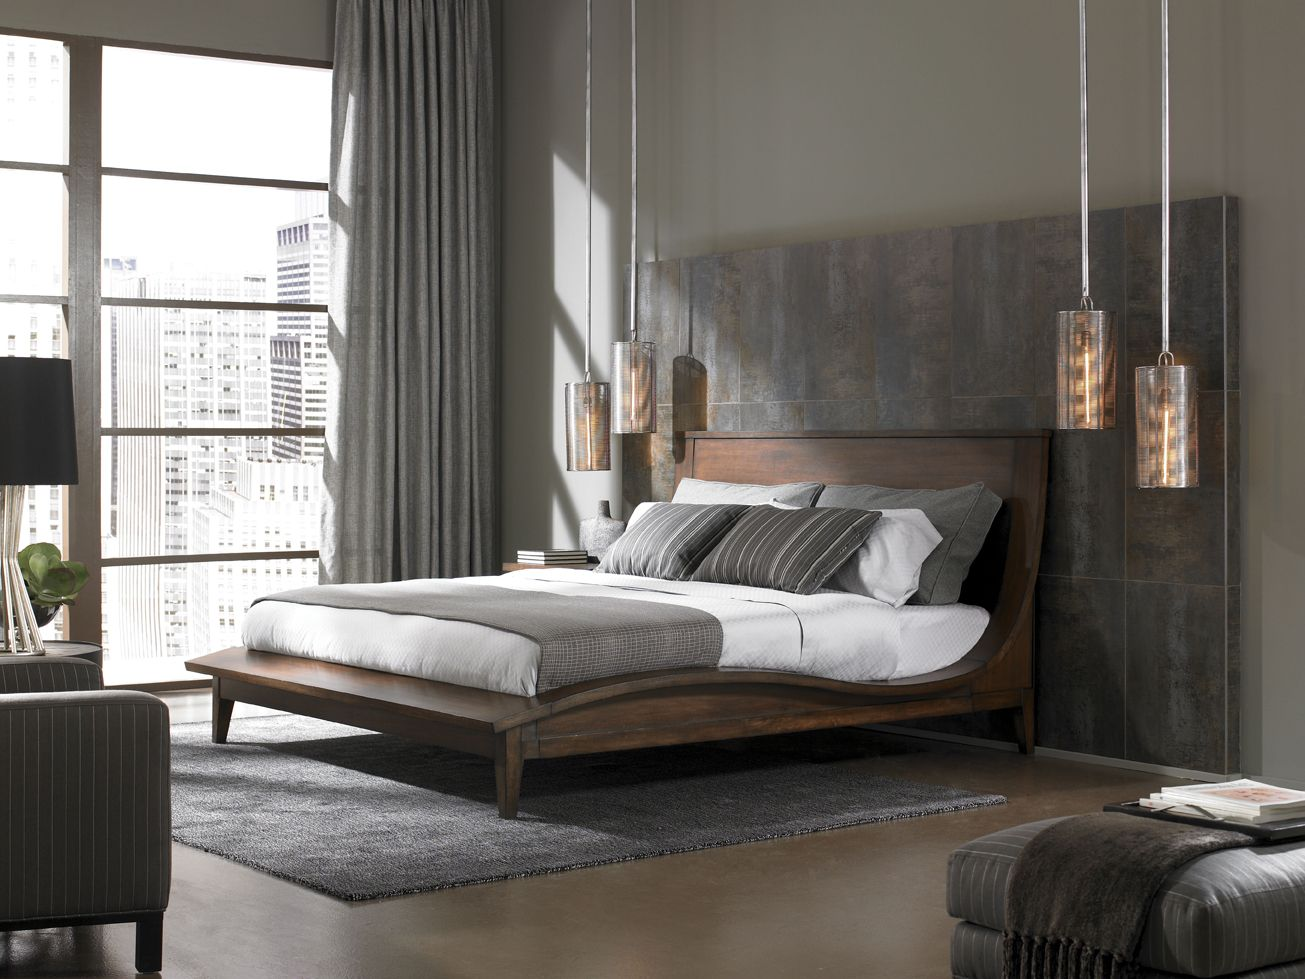 Best 25 modern bedrooms ideas on pinterest modern for Modern bedroom designs ideas